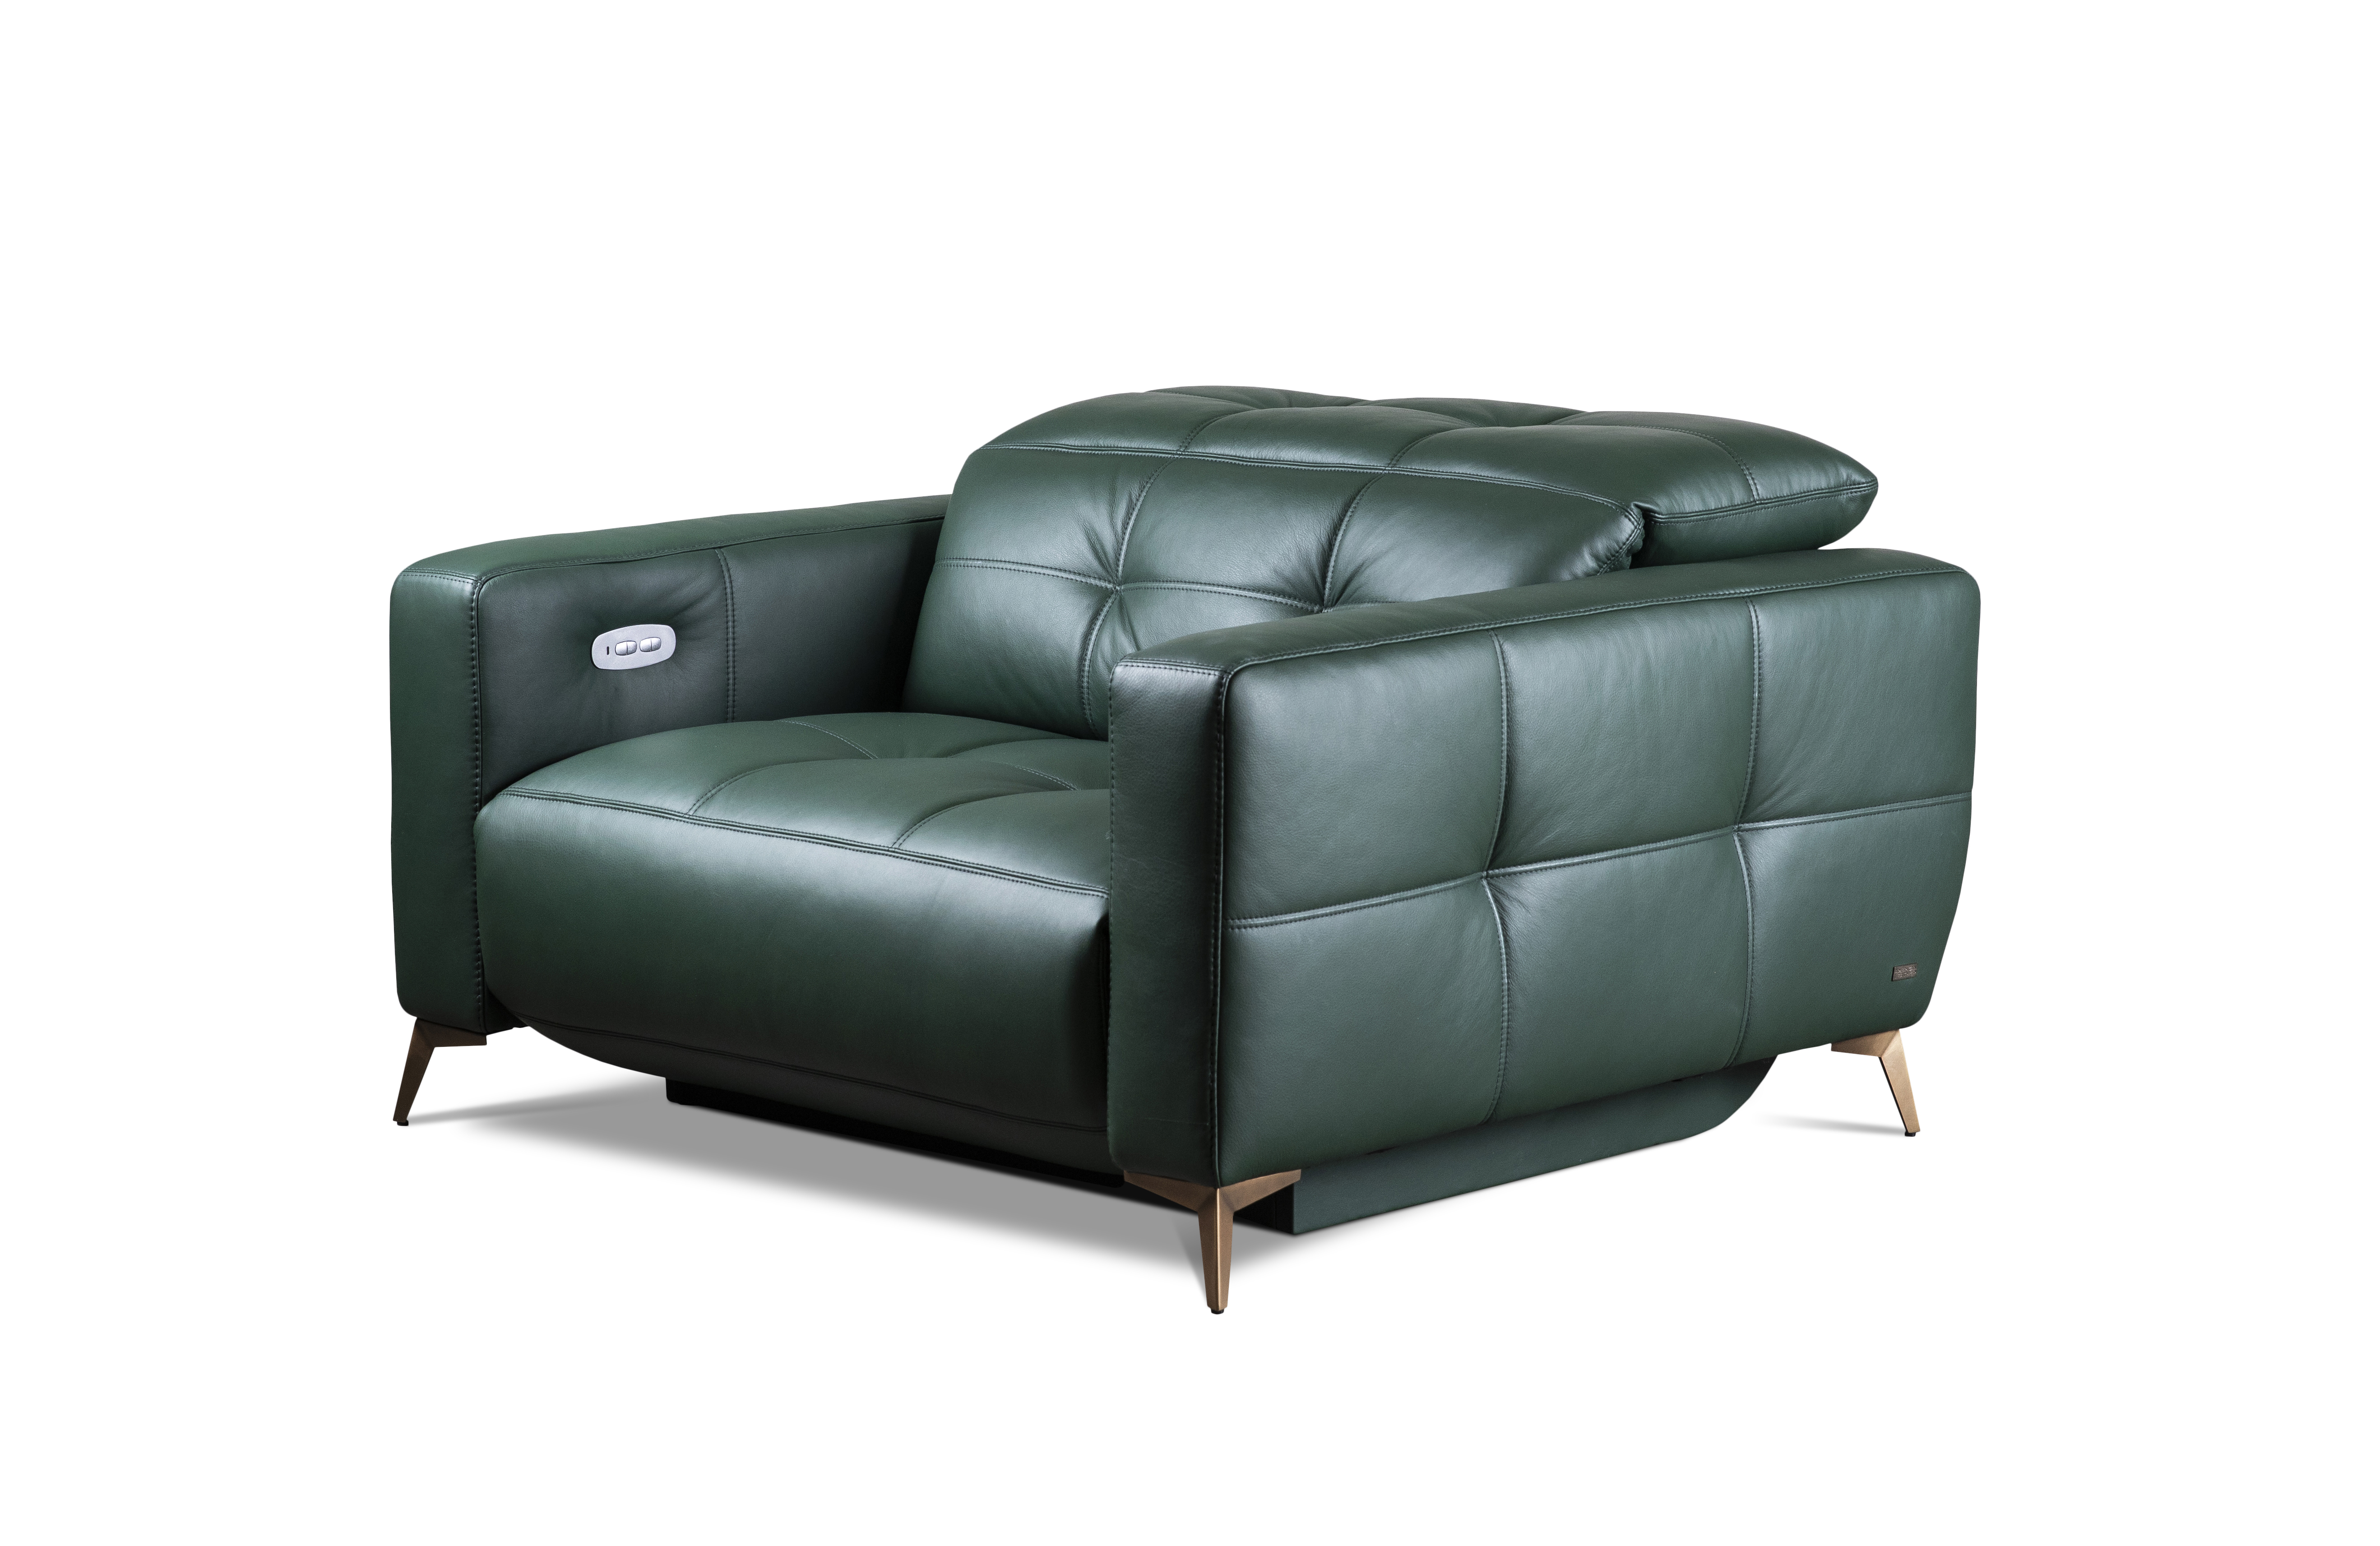 American Leather Verona style in motion